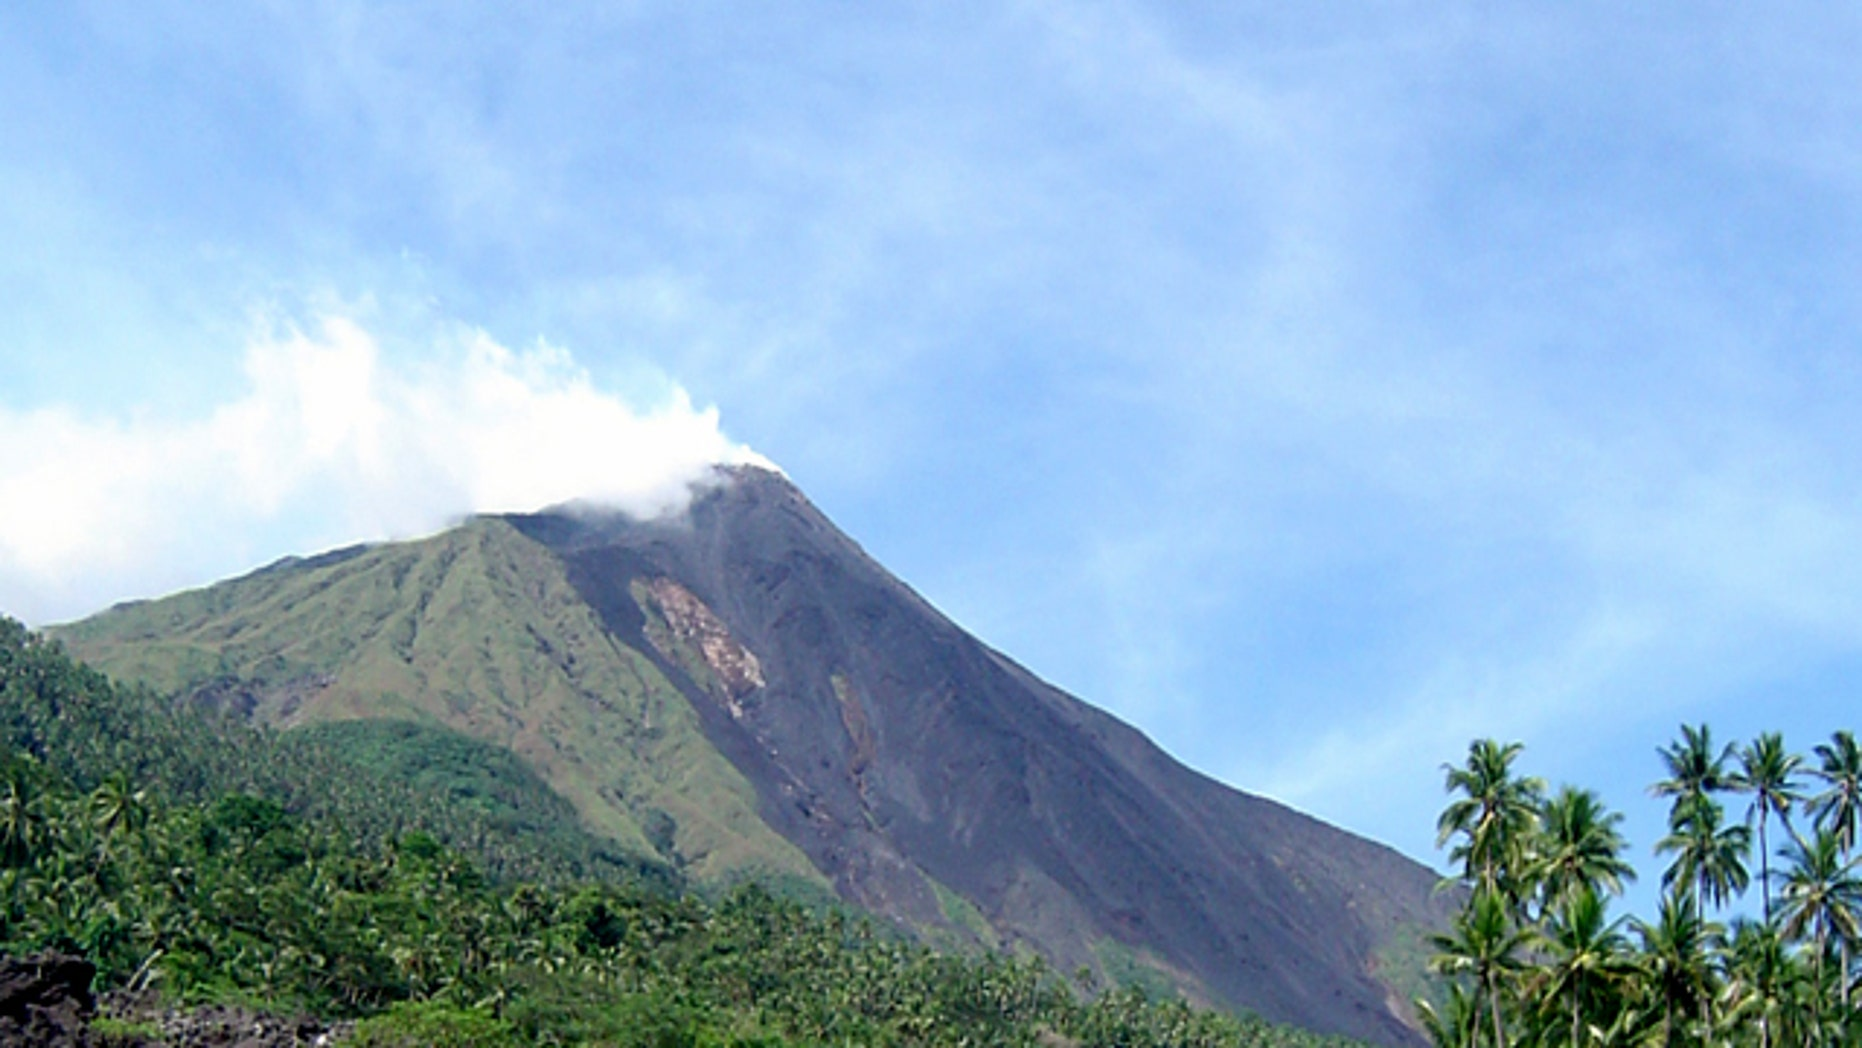 Debris from the Mount Karangetang volcano lies on the shoulder of the mountain in Siau, part of Indonesia's Sulawesi island chain, in this July 27, 2006 file photo.